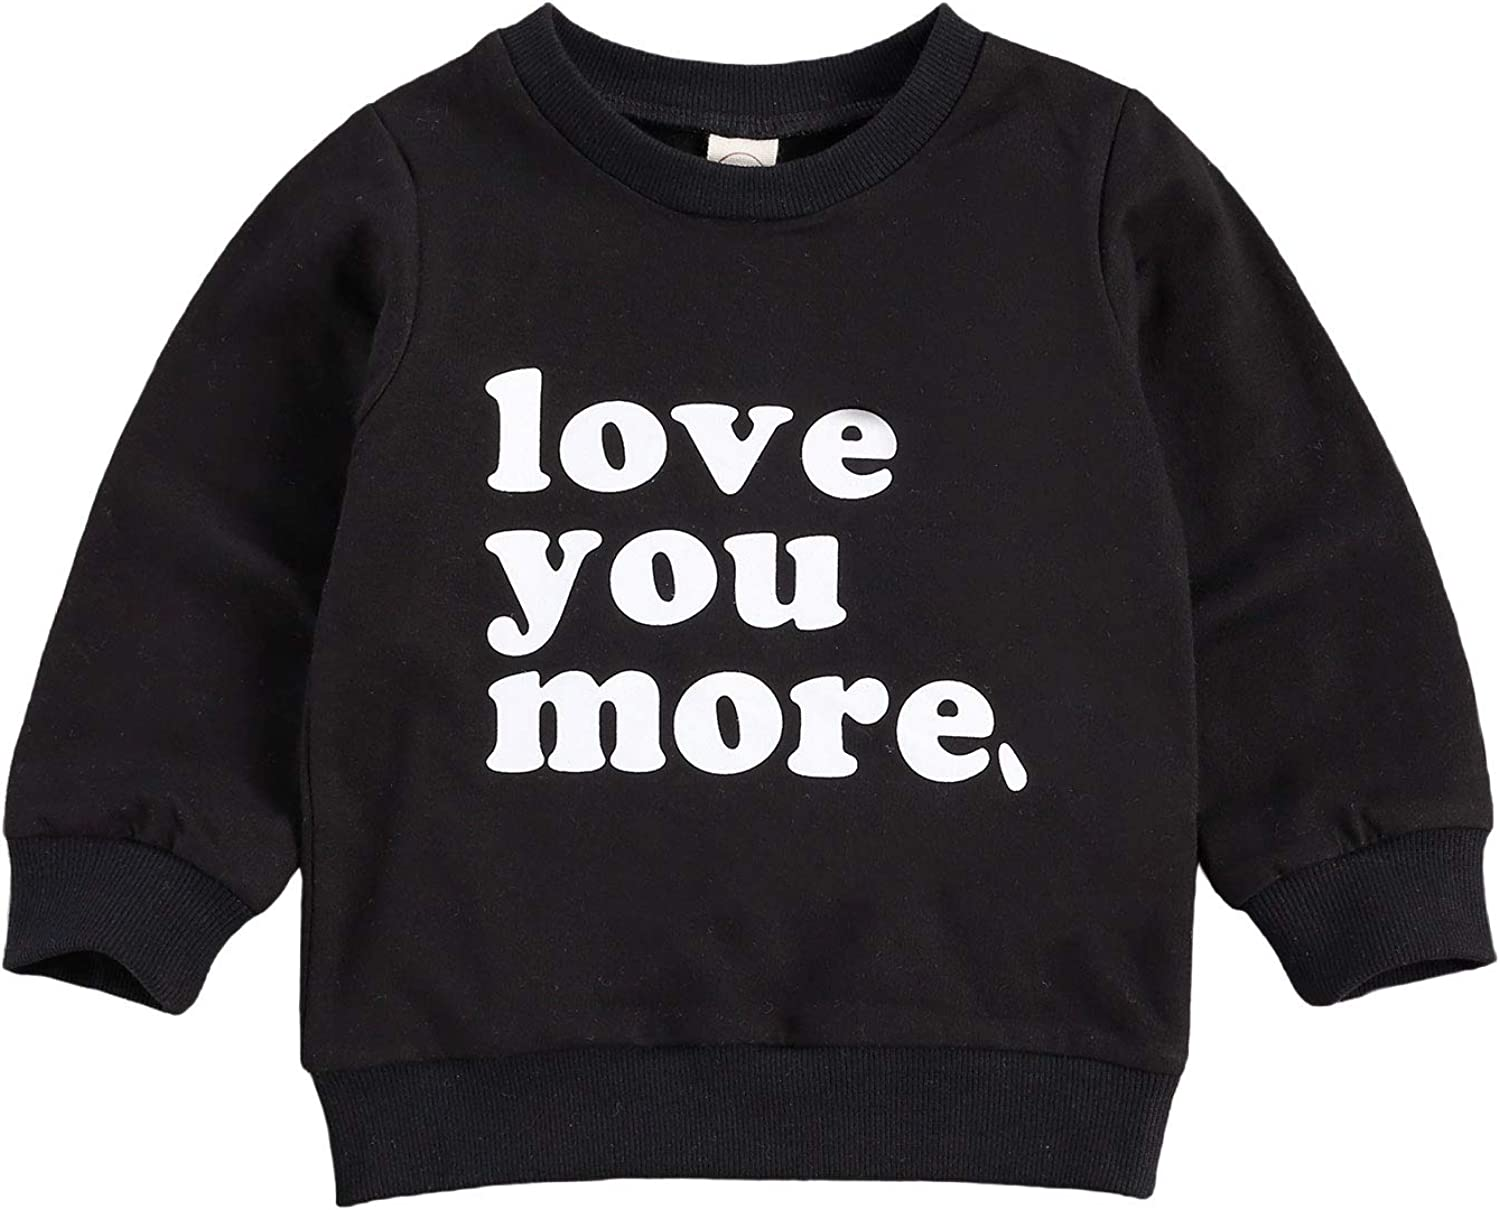 Toddler Baby Girl Boys Pullover Top Letter Babe Printed Causal Long Sleeve Sweatshirt Infant Fall Winter Clothes